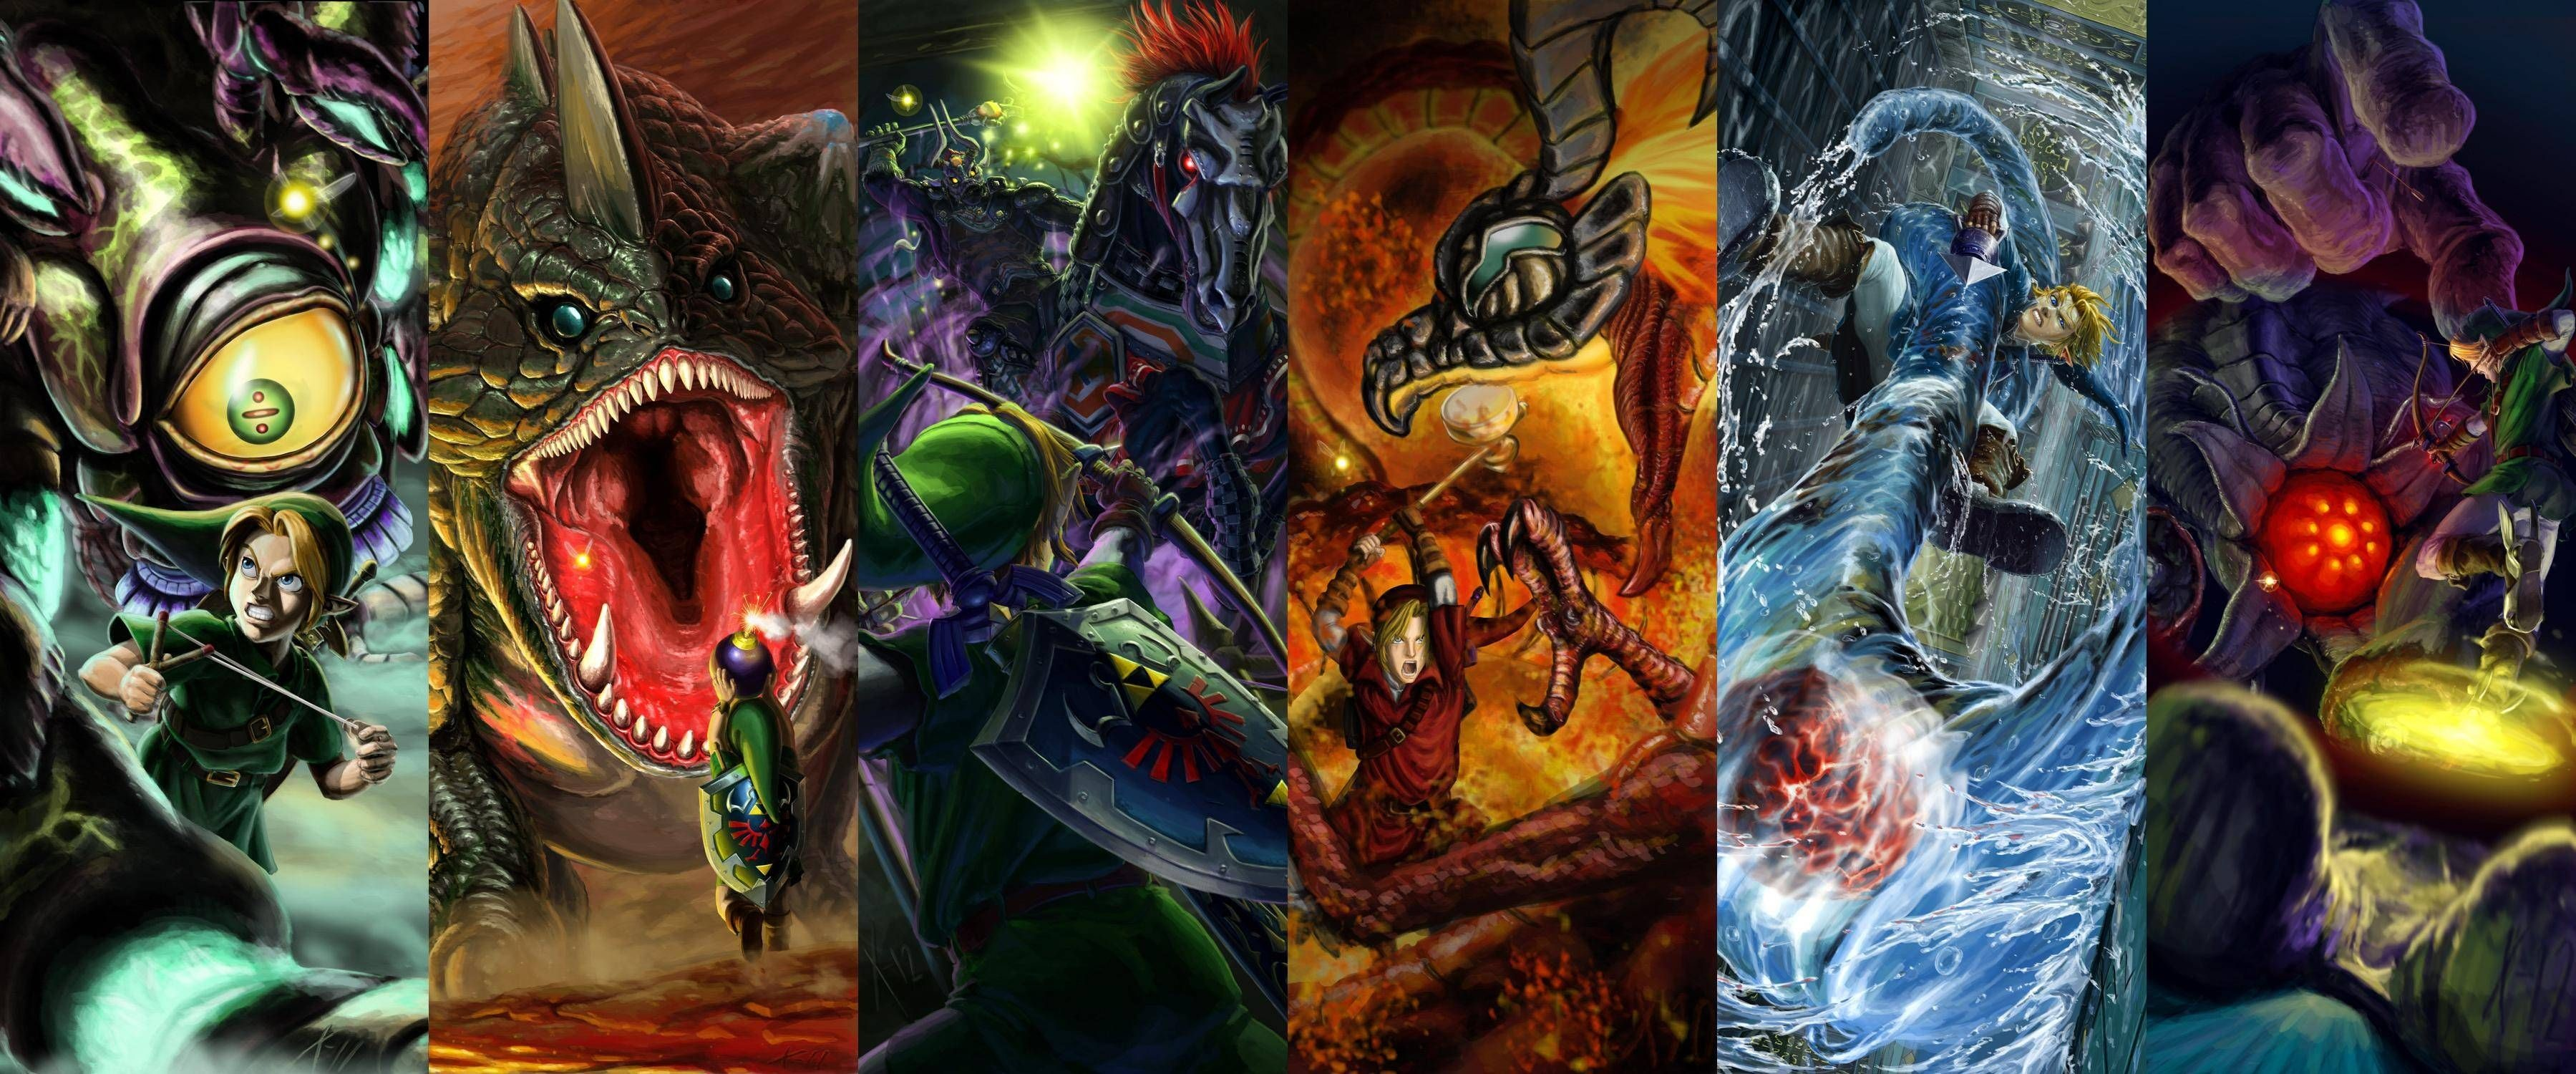 3599x1500 Legend of Zelda Wallpaper Showcases Epic Ocarina of Time Battles